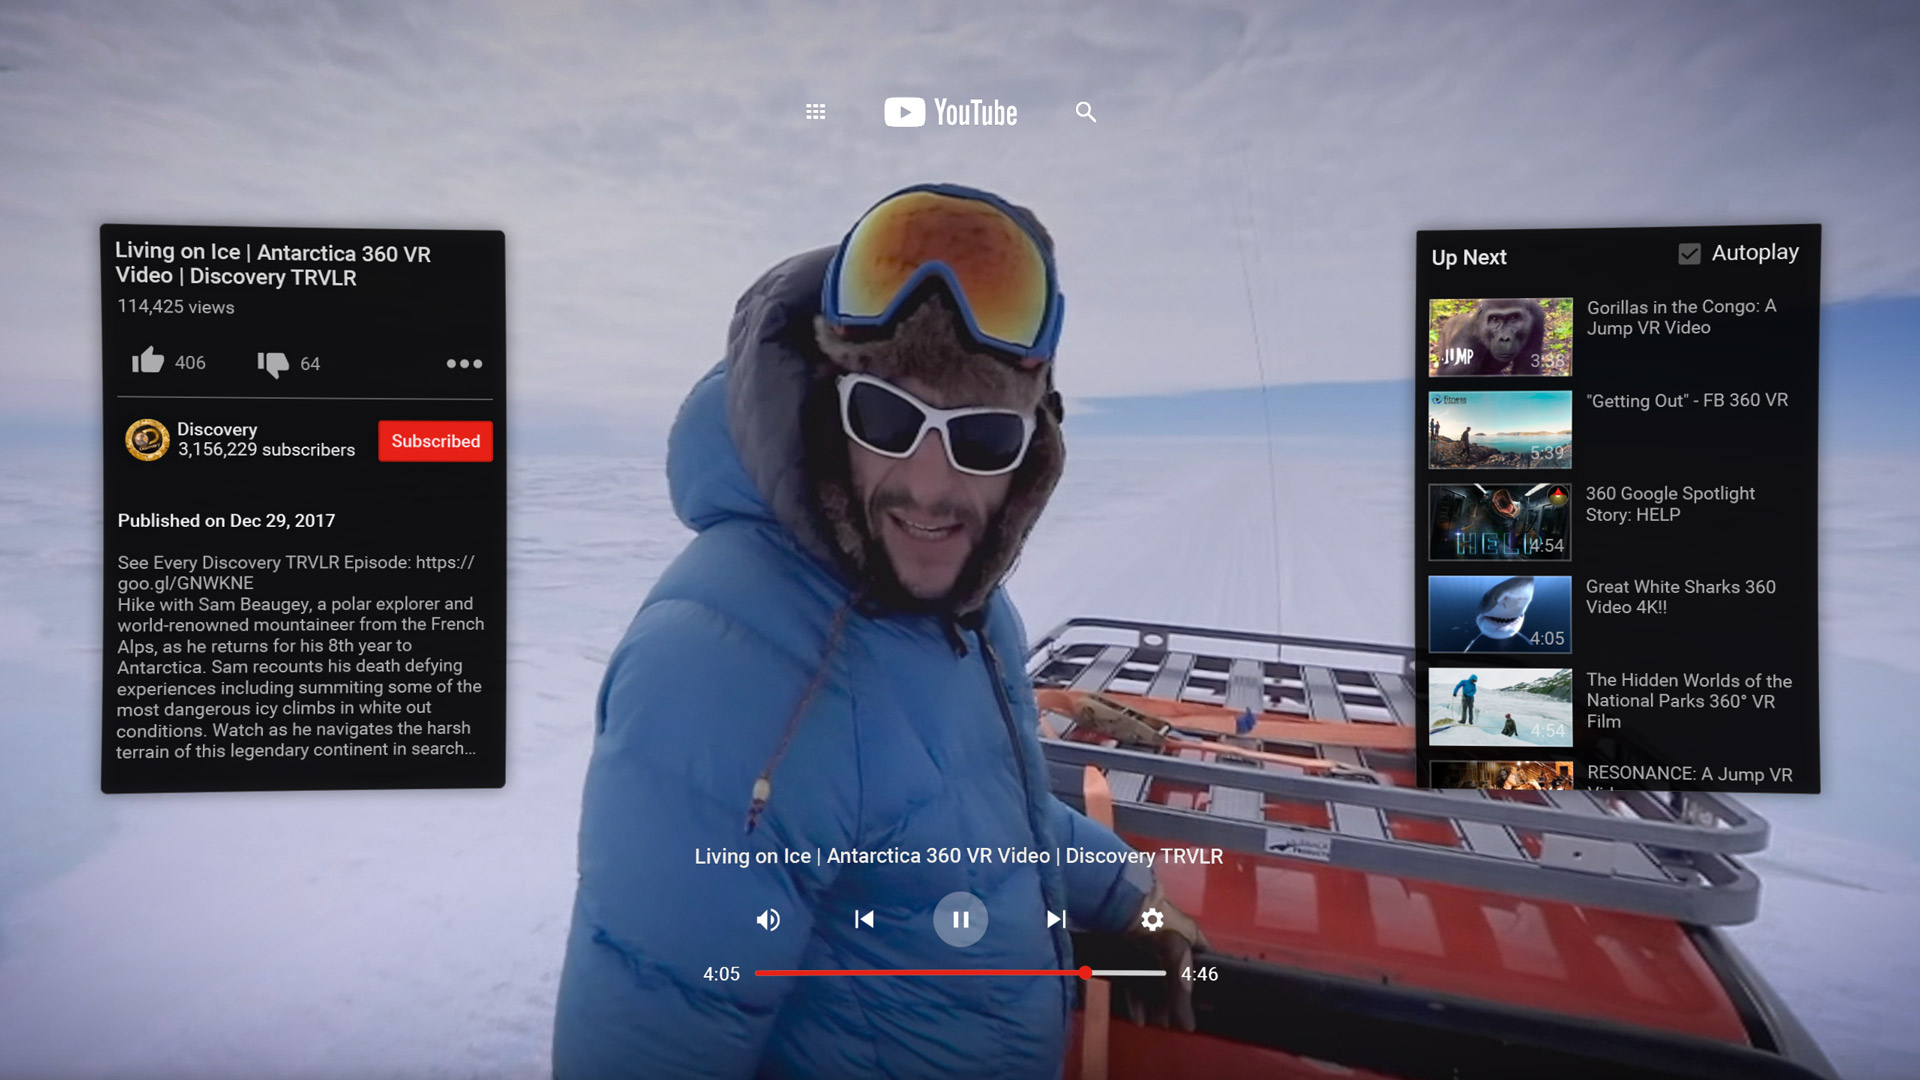 'YouTube VR' Finally Comes to Oculus Go, Now Available on Oculus Store